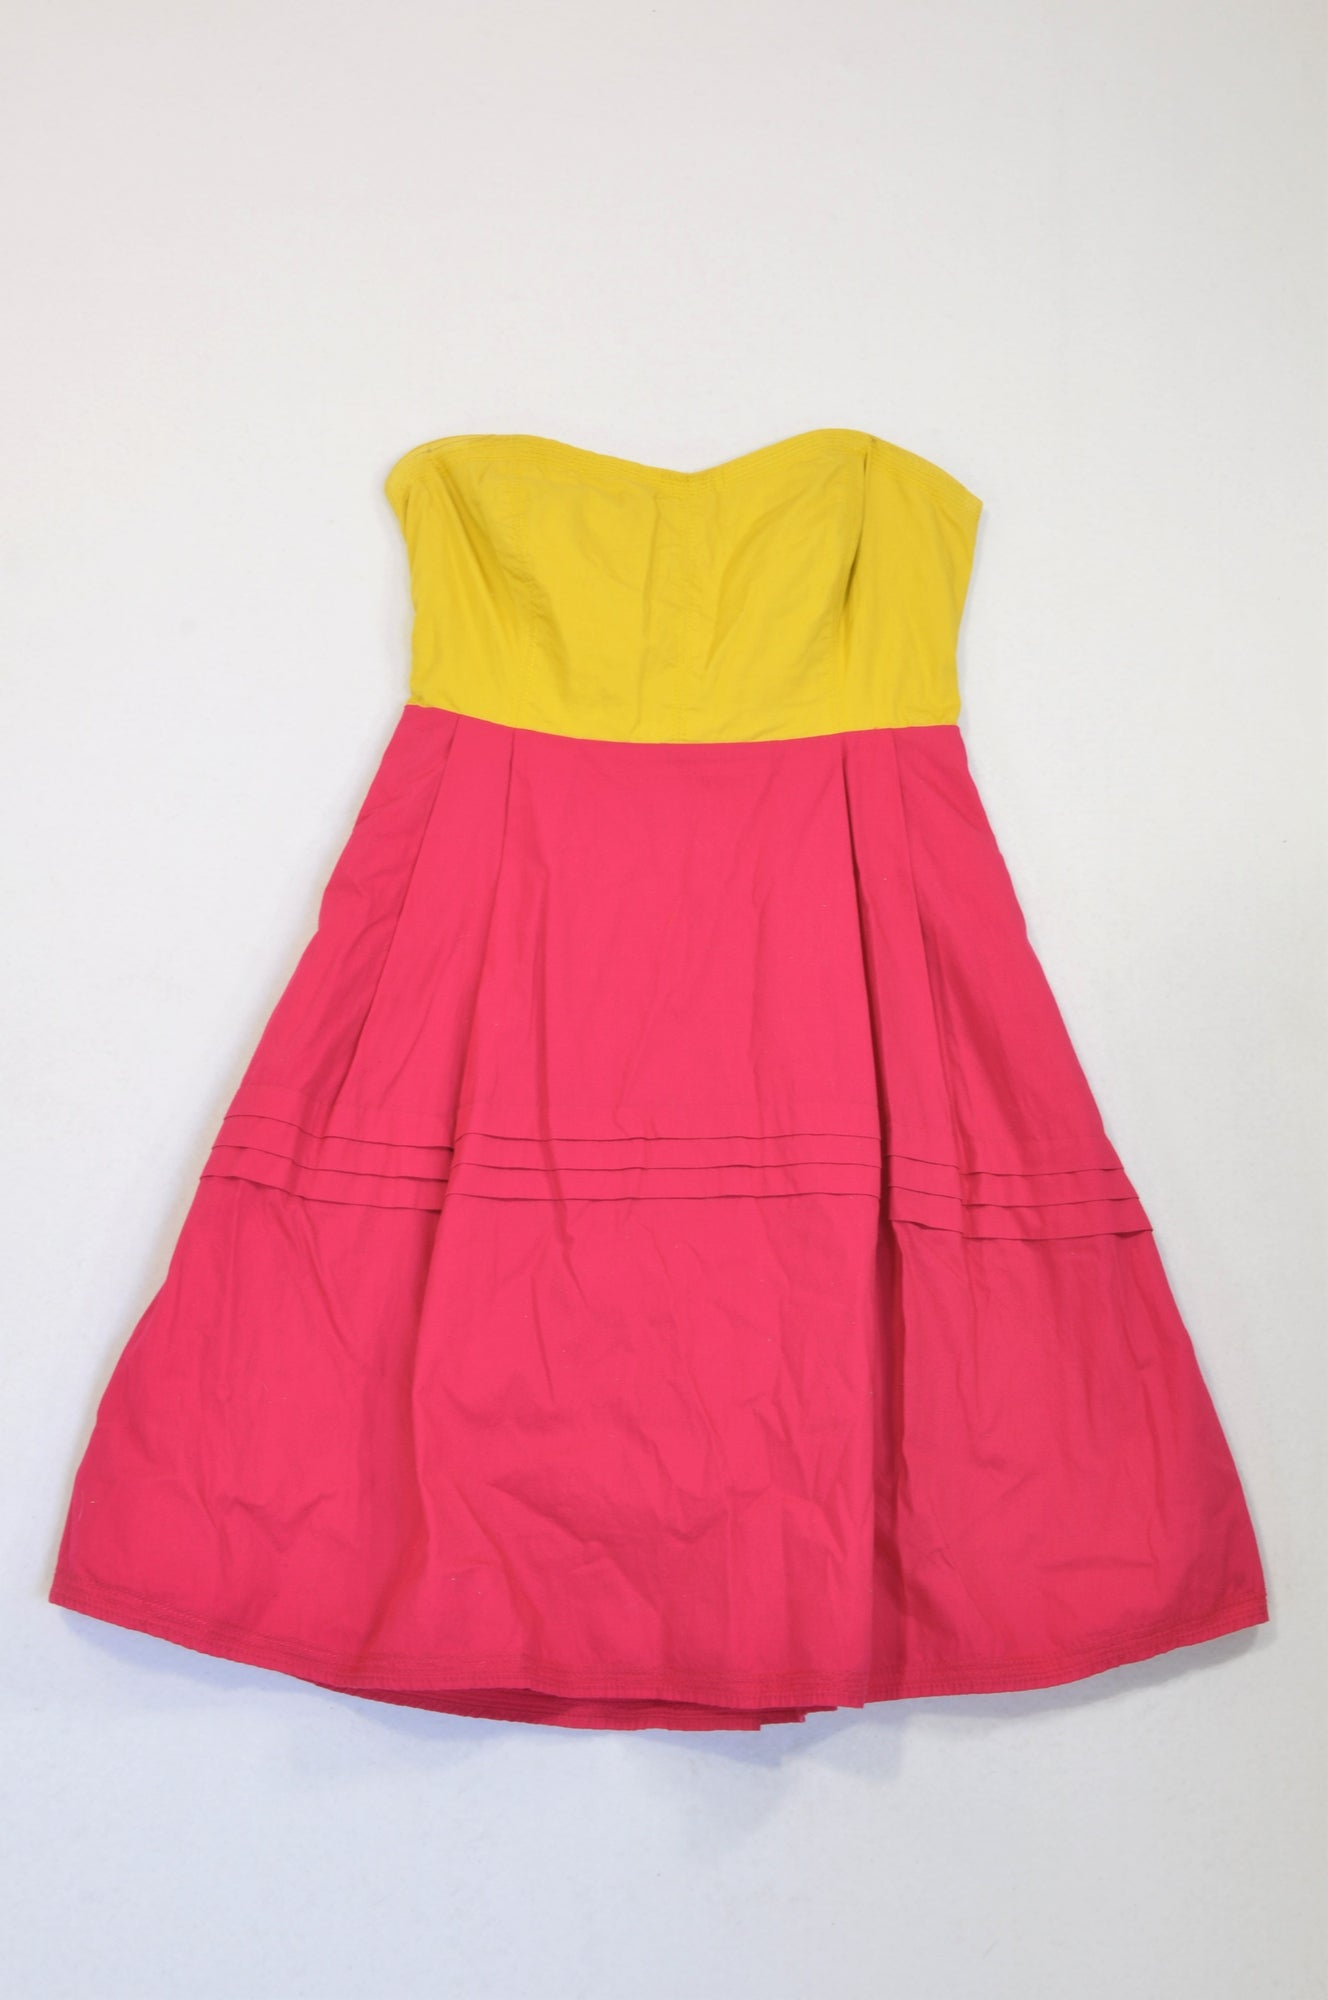 Maeve Kiwi Cerise Panelled Strapless A-Line Cocktail Dress Women Size 10